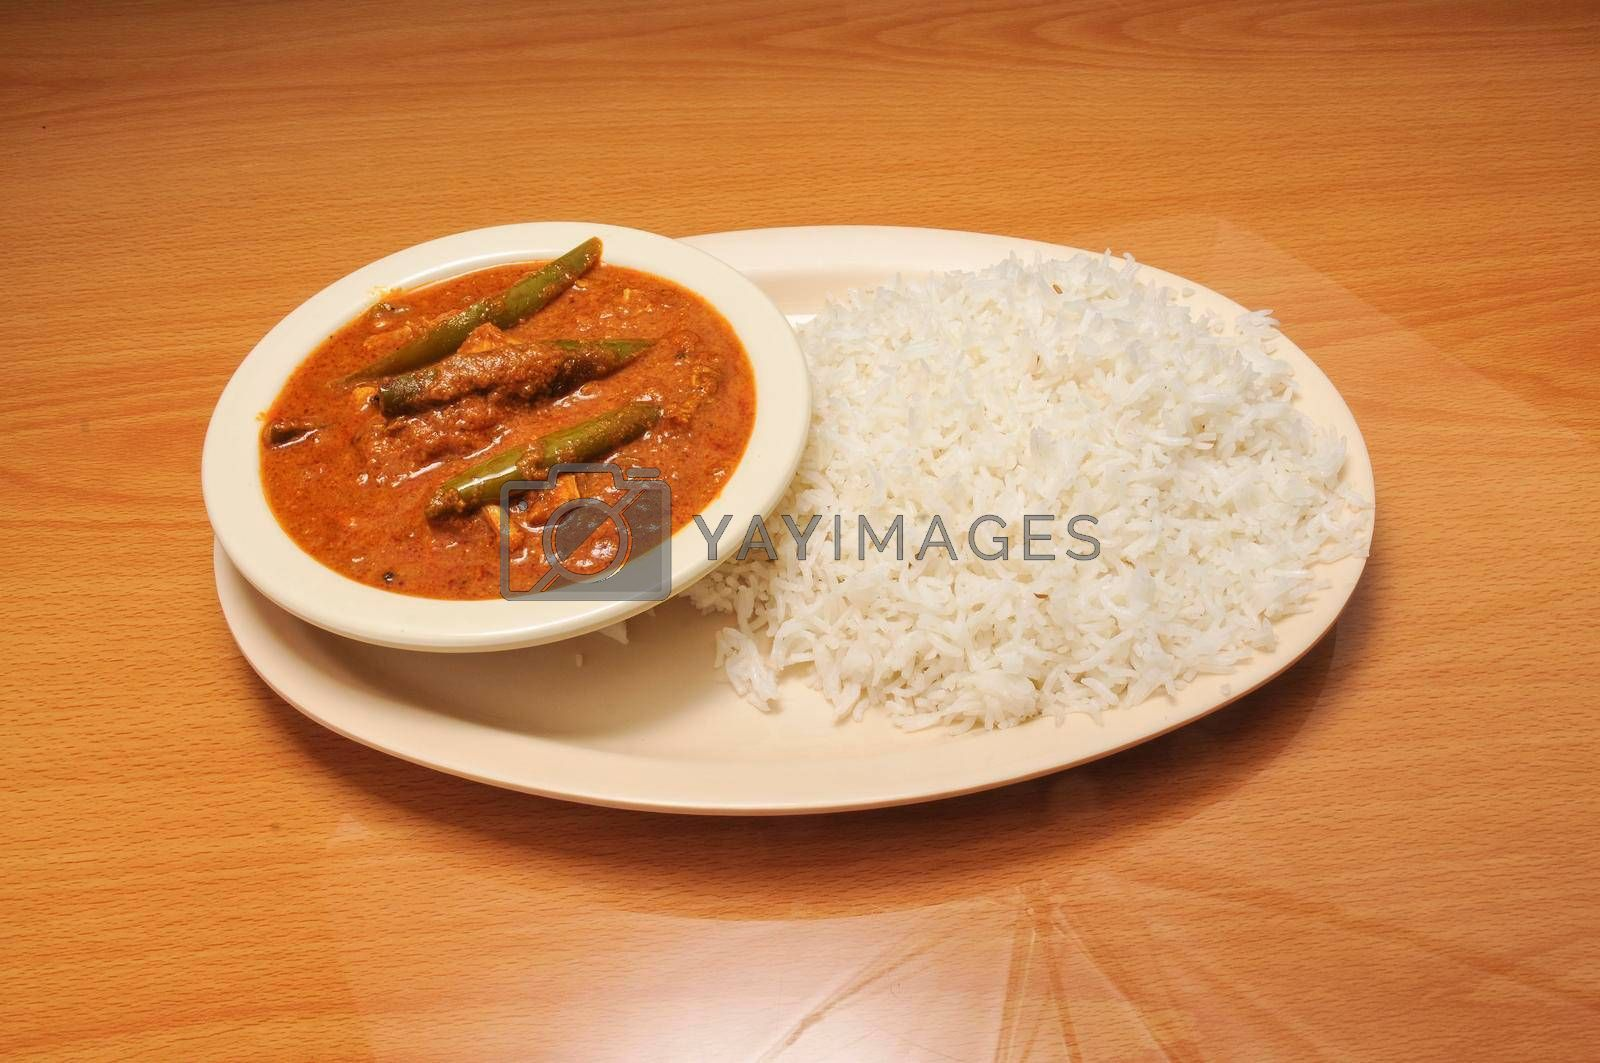 Delicious and authentic cuisine known as curry chicken